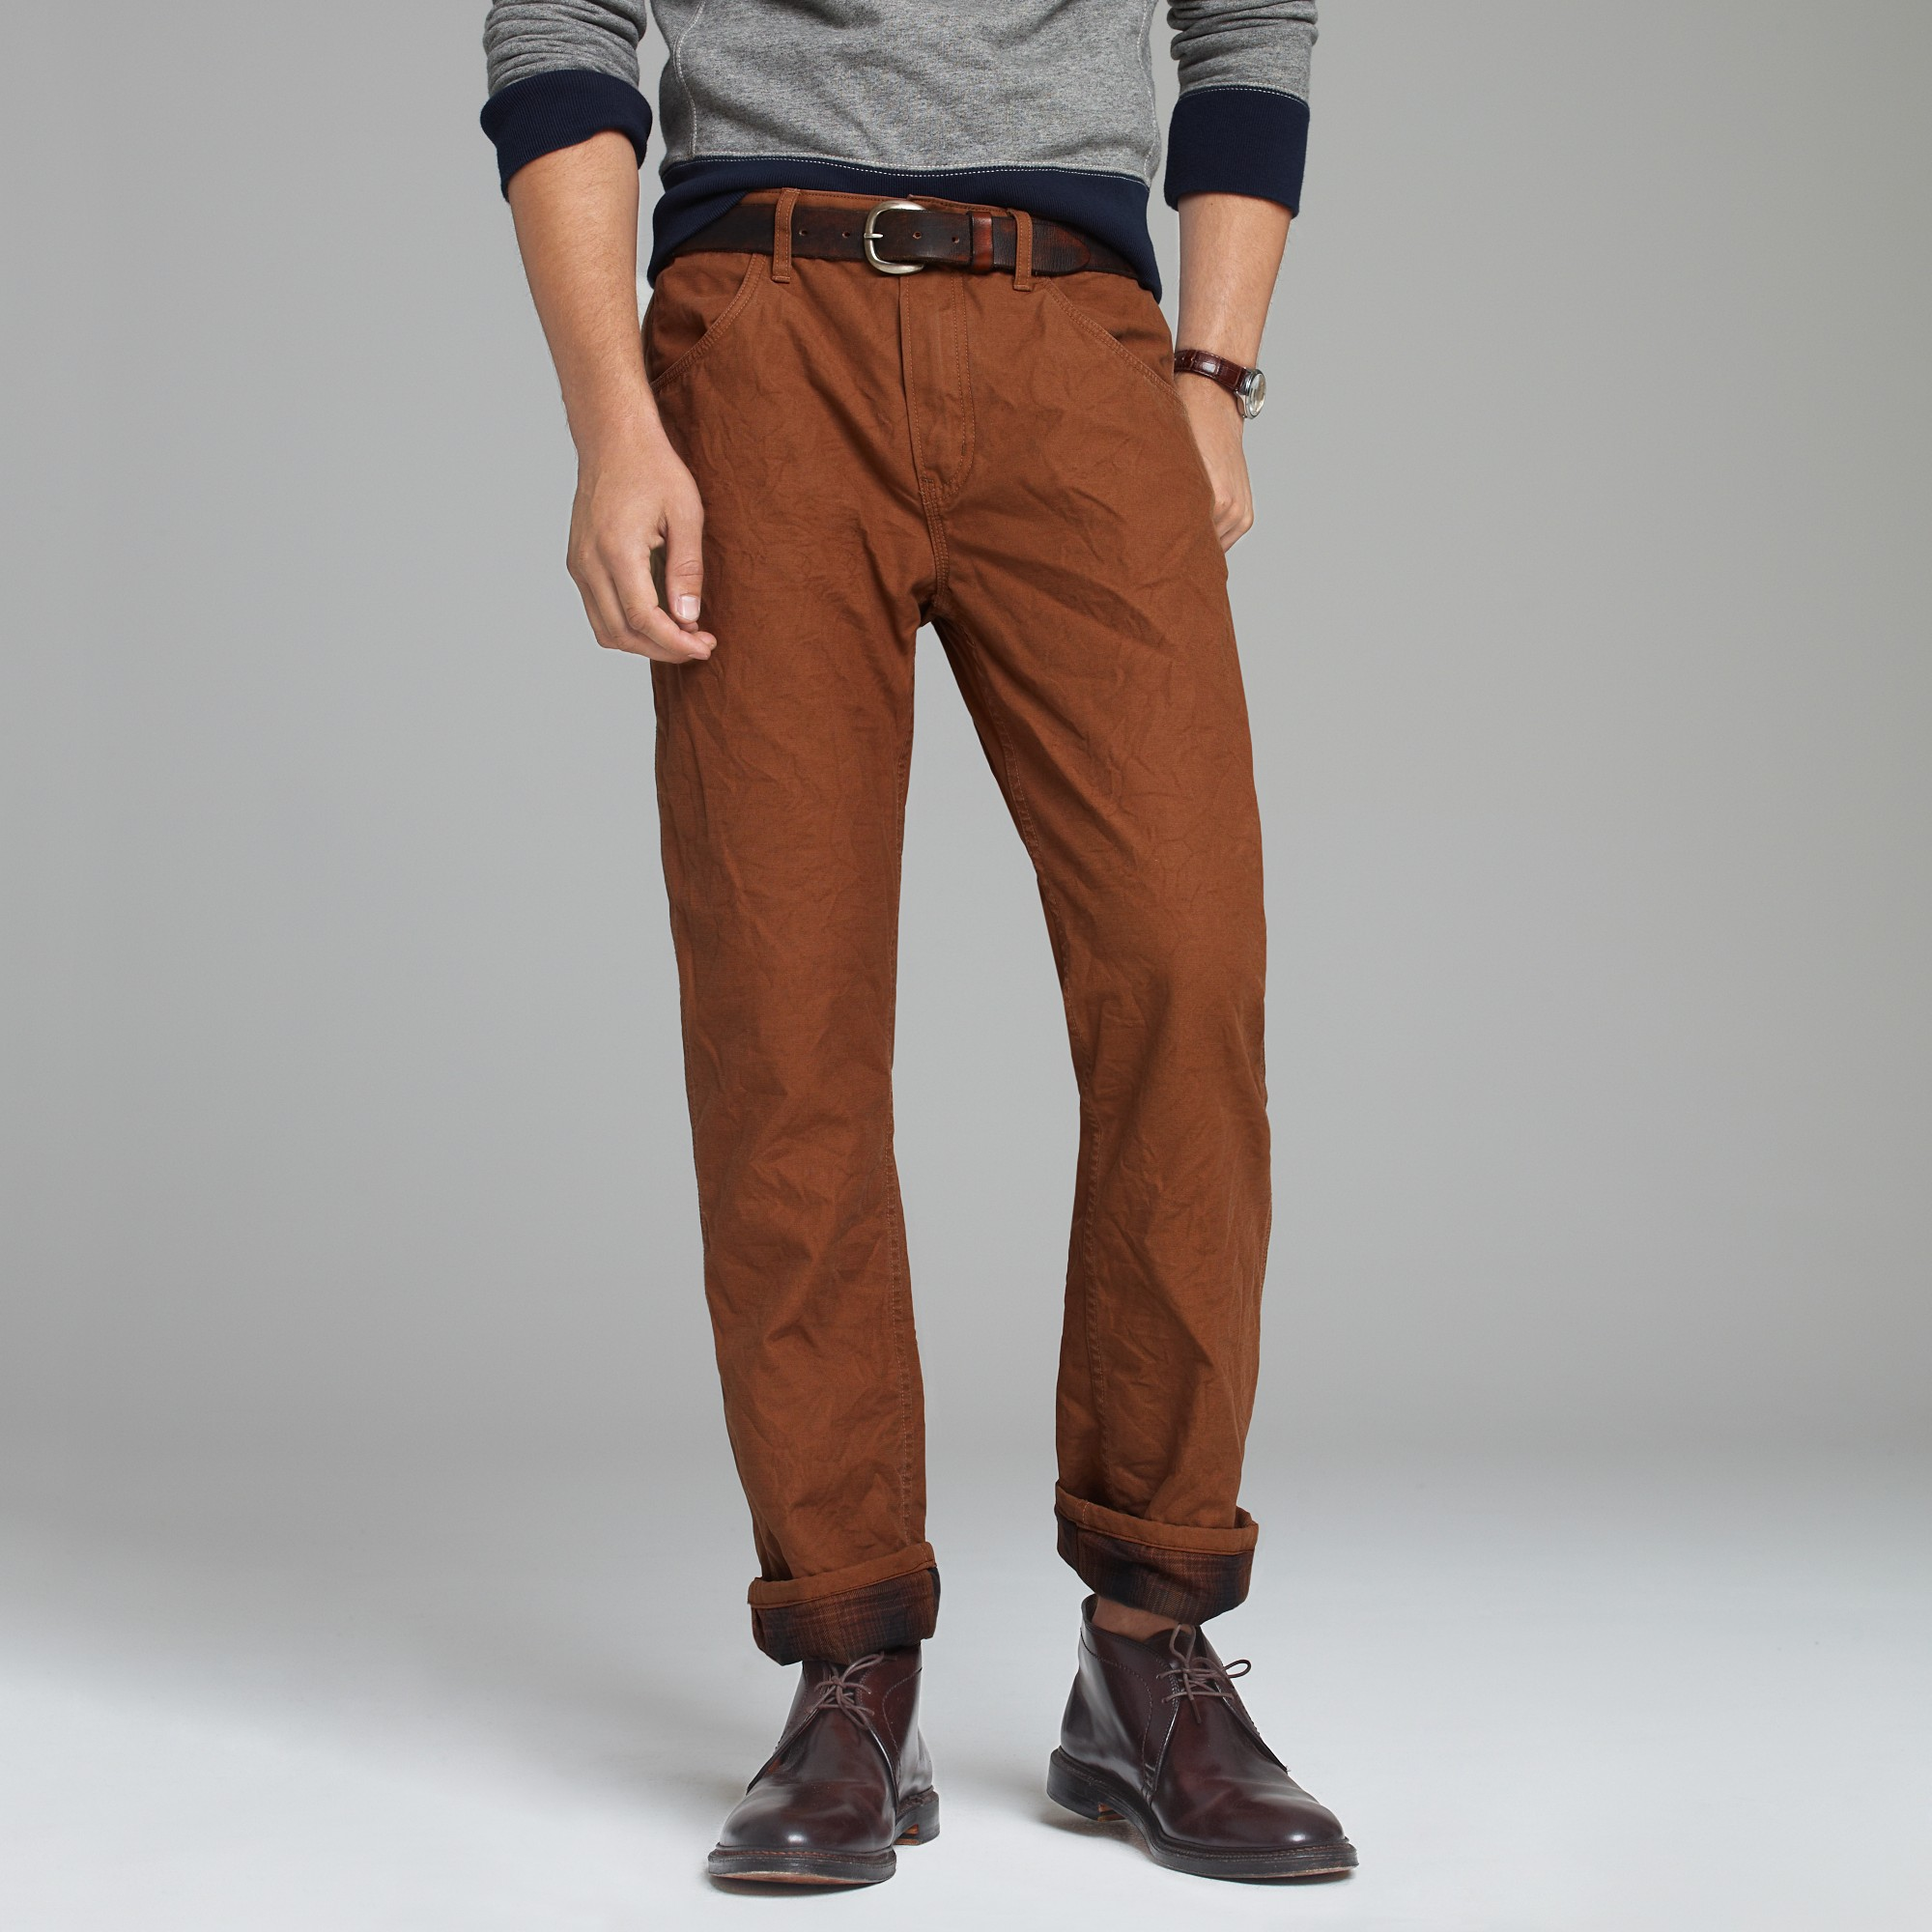 J.crew Flannel-lined Tompkins Pant in Vintage Slim Fit in Brown ...